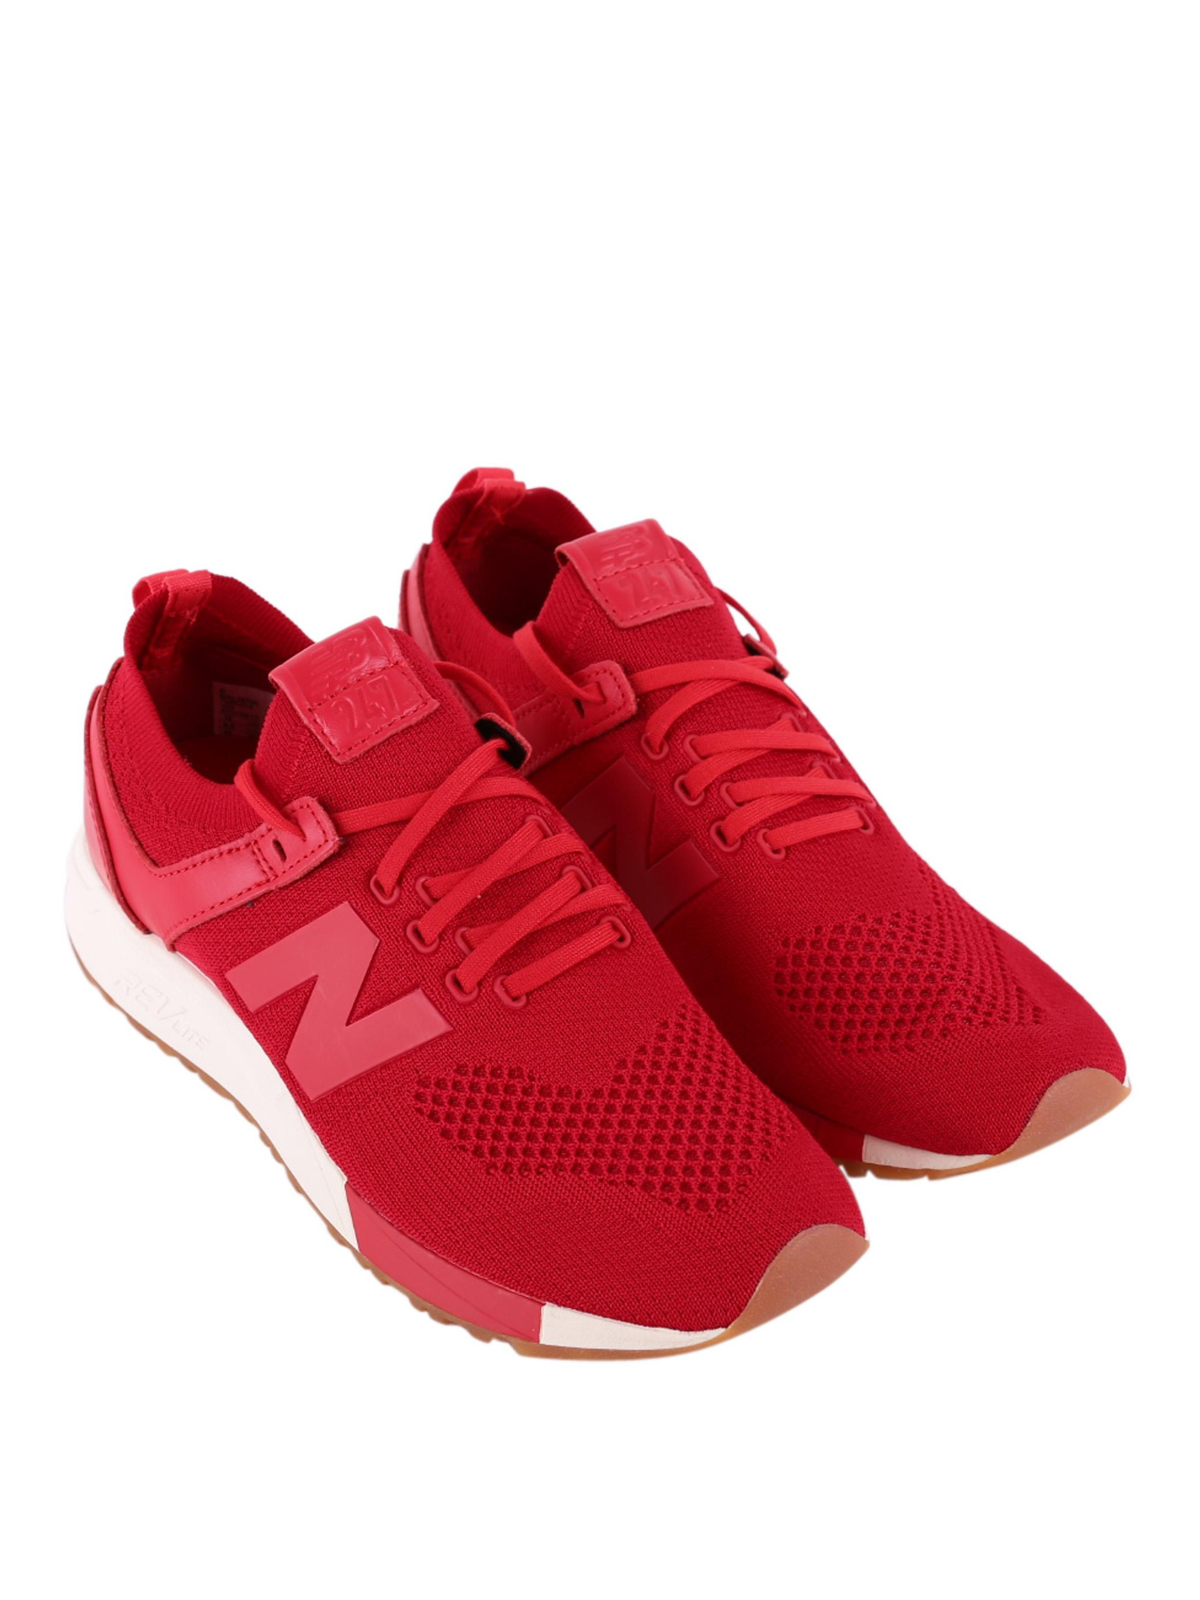 Trainers New Balance - 247 Decon red sneakers - MRL247DC   iKRIX.com